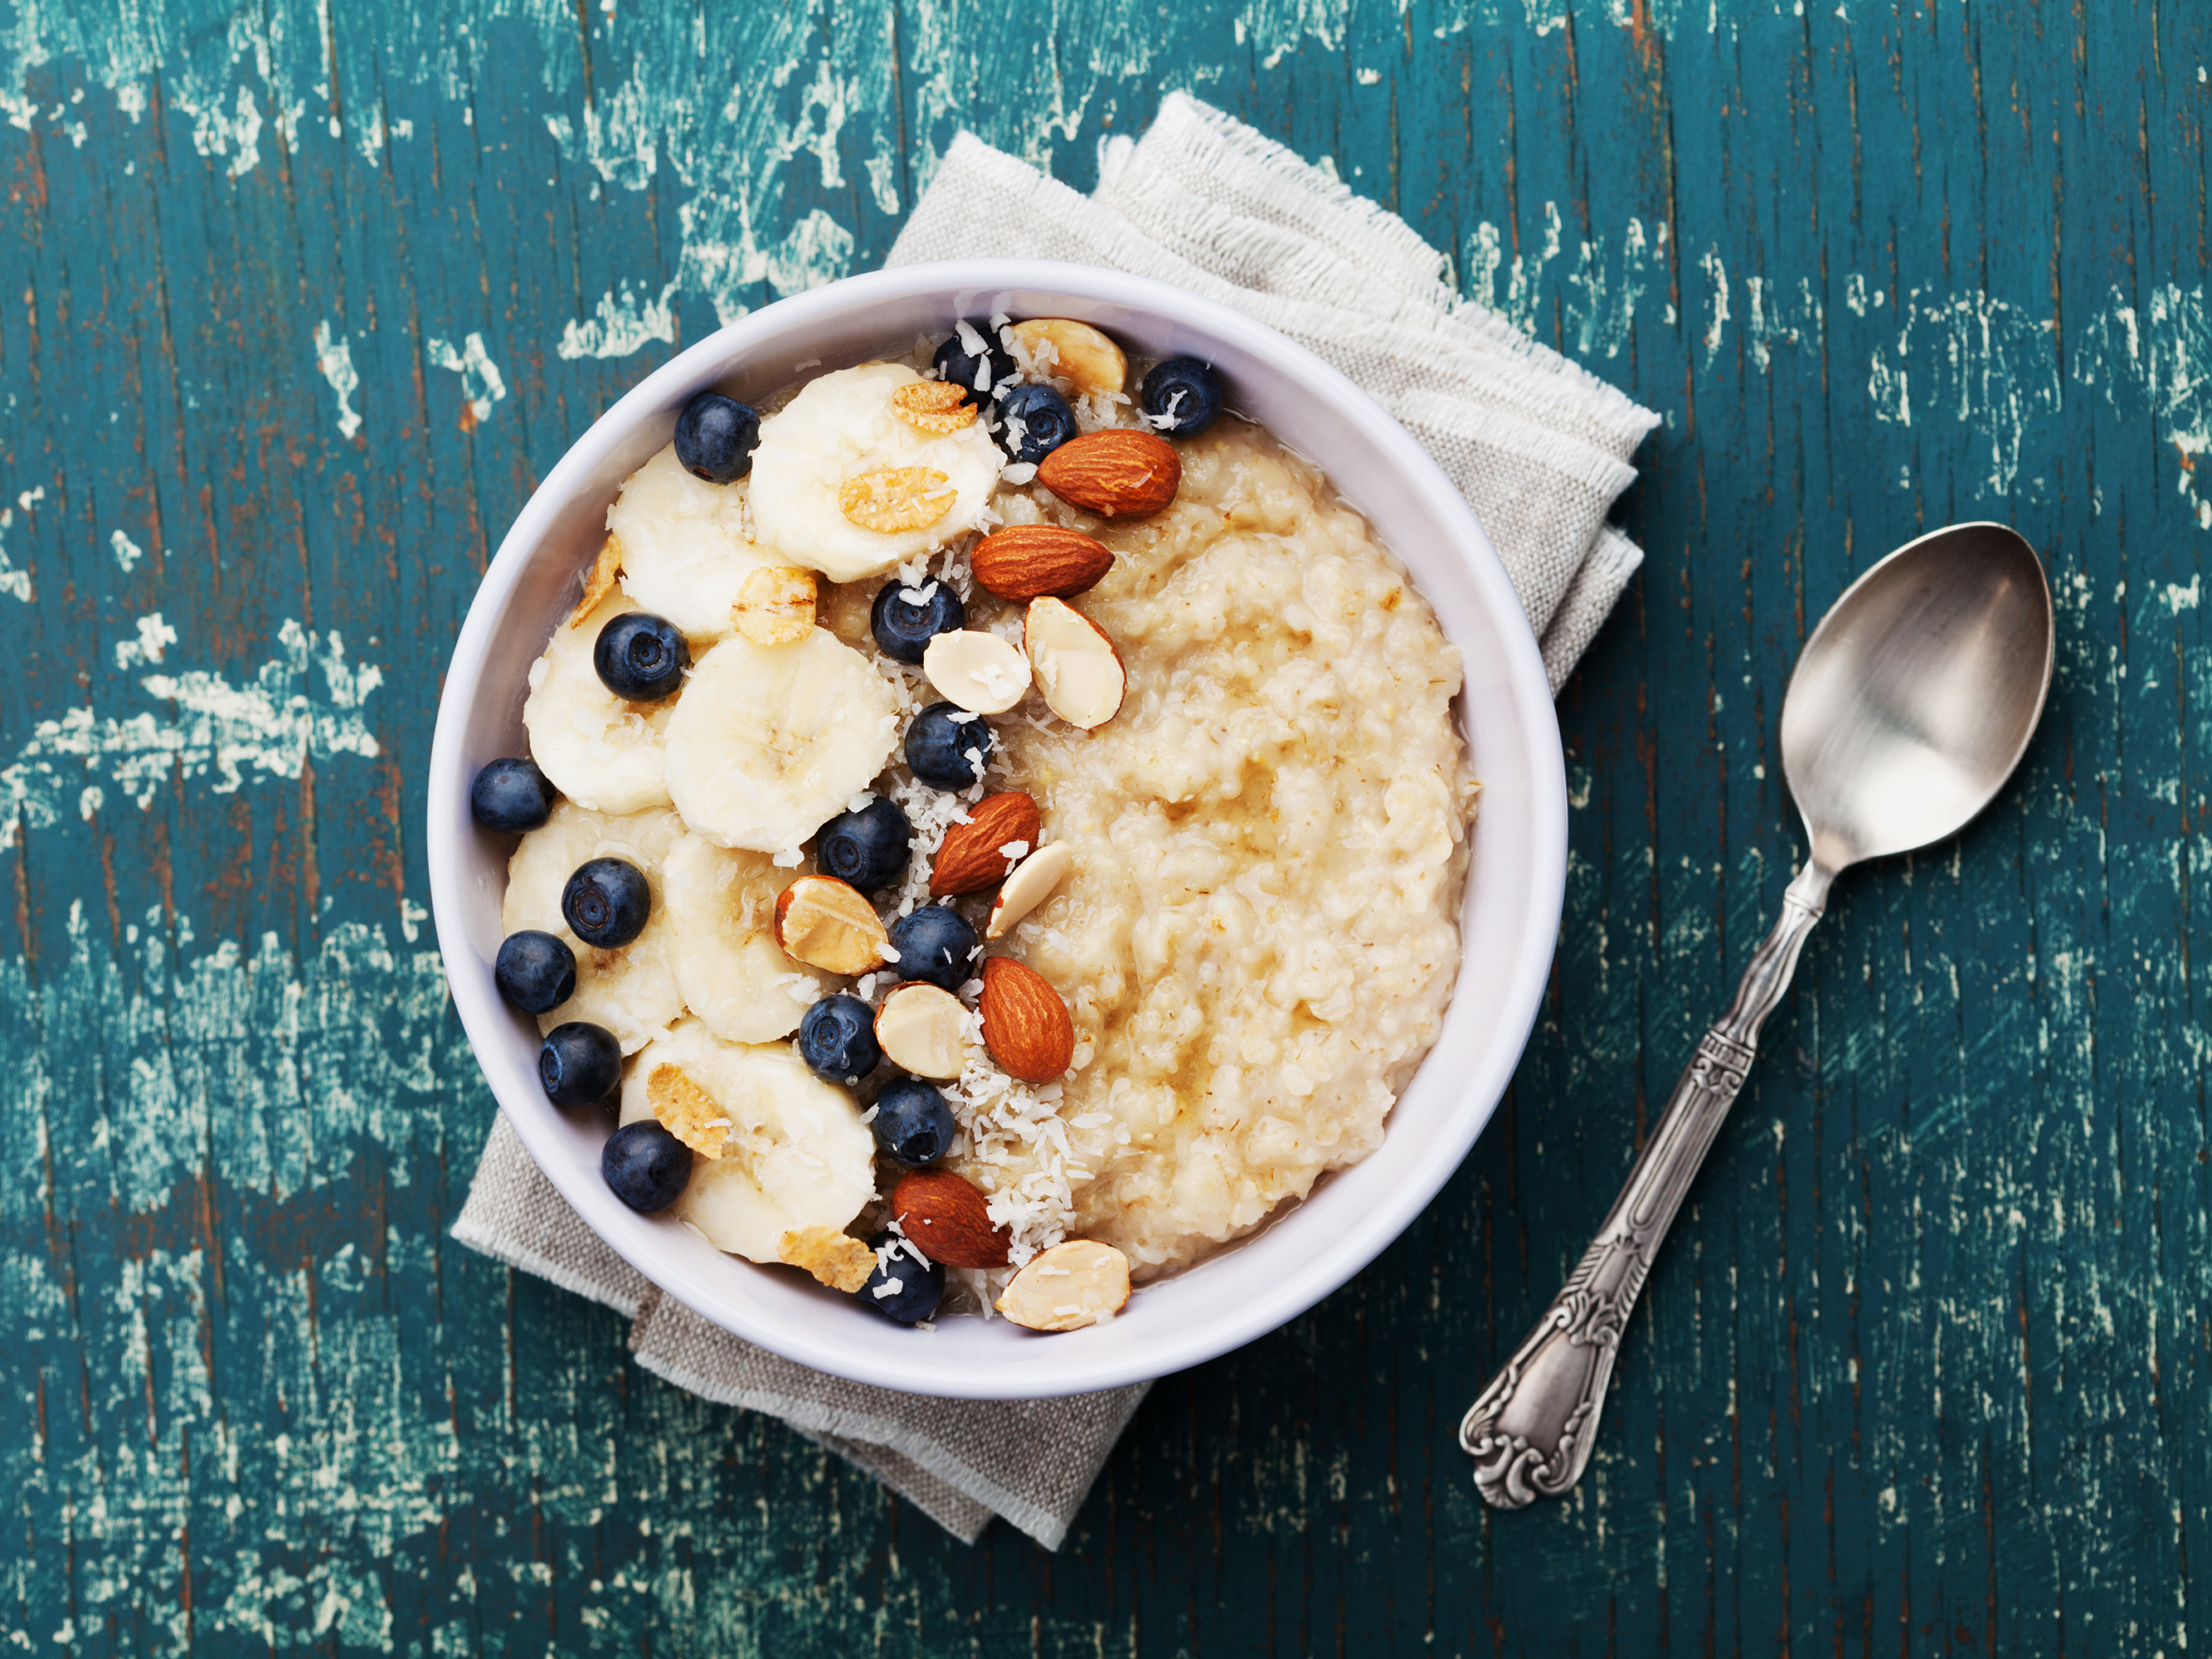 Healthy Bowl of Oatmeal